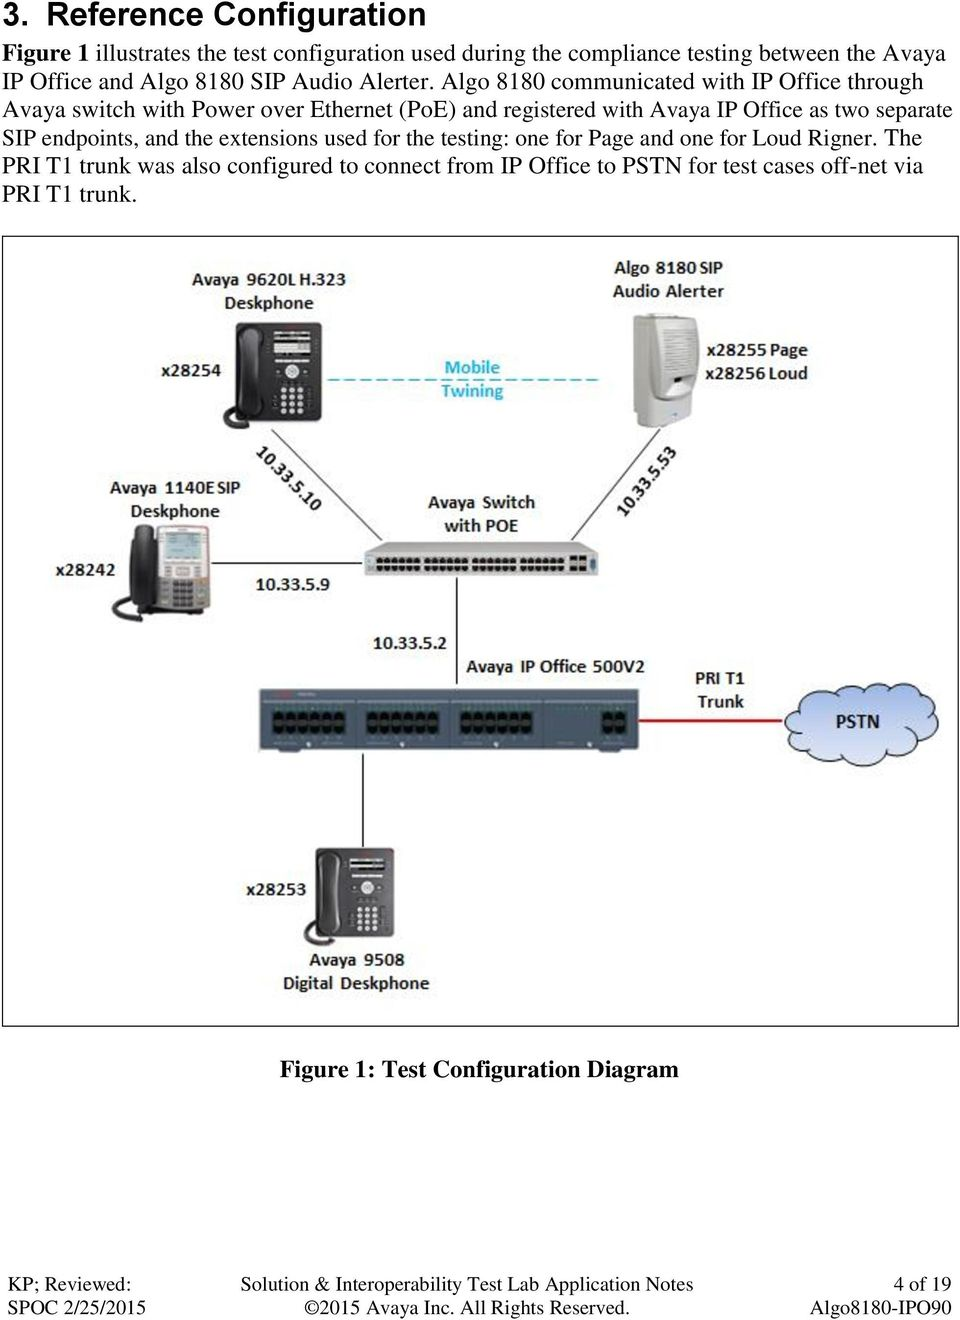 Algo 8180 communicated with IP Office through Avaya switch with Power over Ethernet (PoE) and registered with Avaya IP Office as two